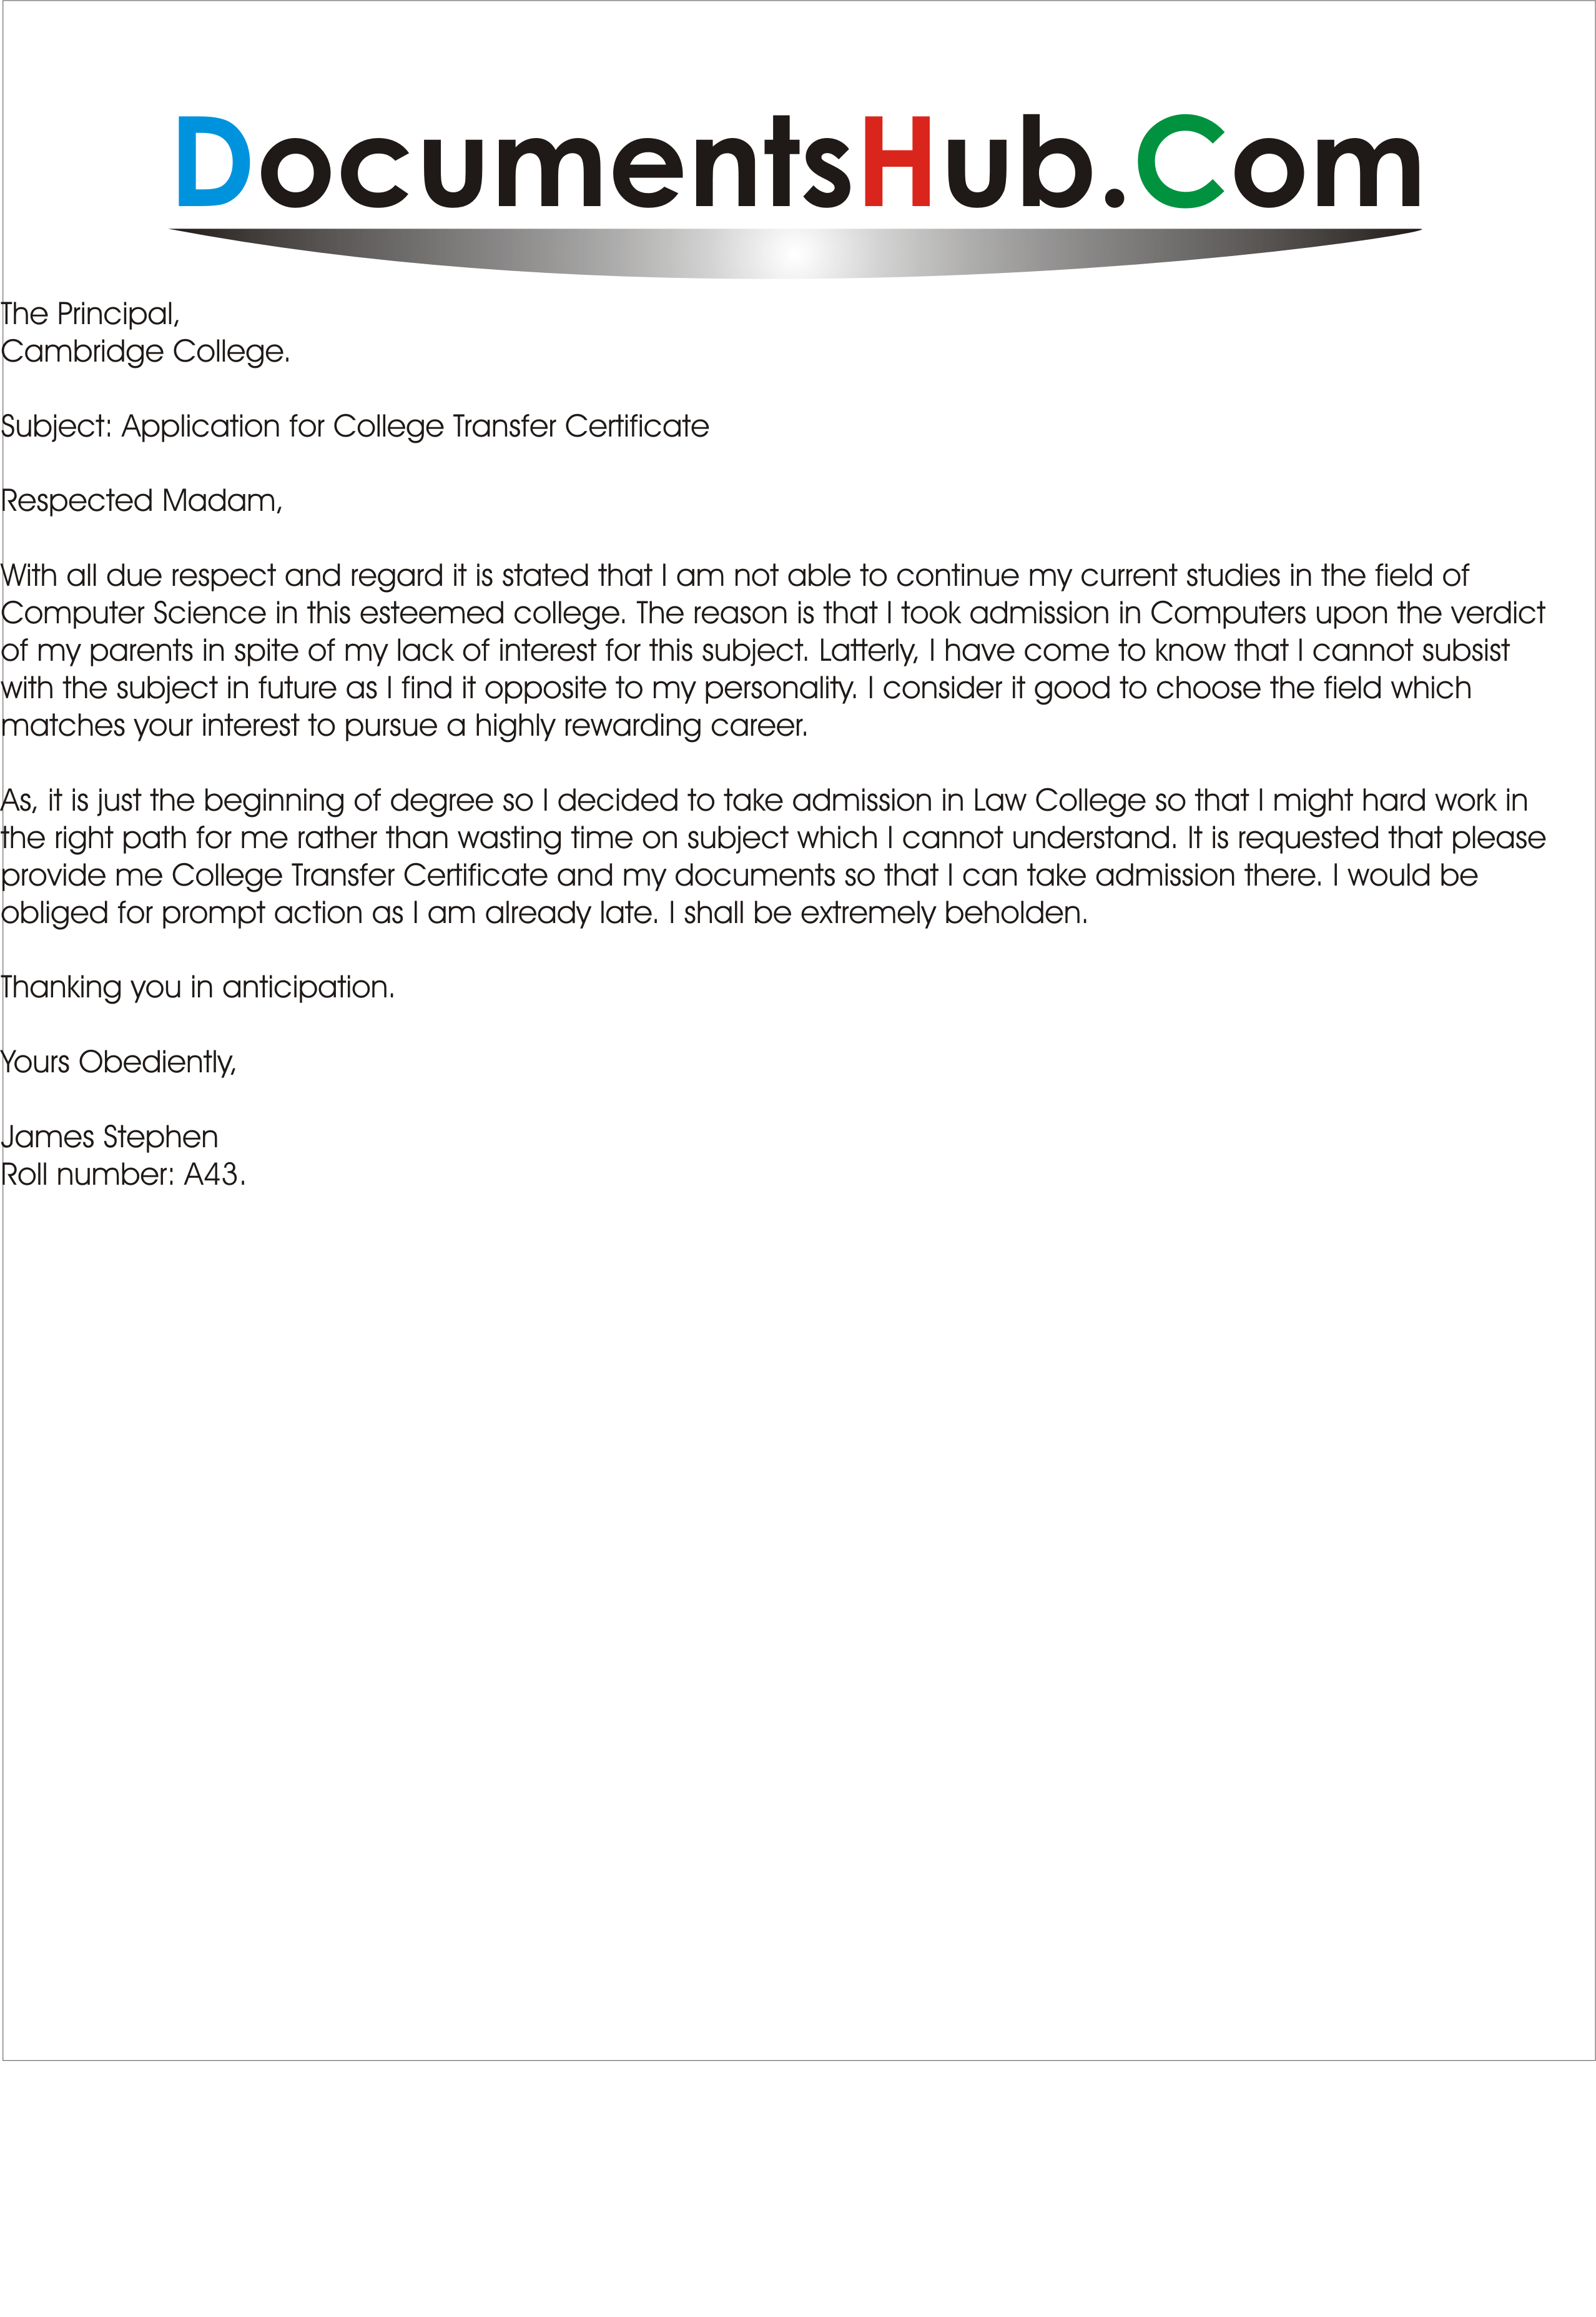 Request letter format for school transfer certificate bonafide request letter format for school transfer certificate bonafide from application yadclub Images